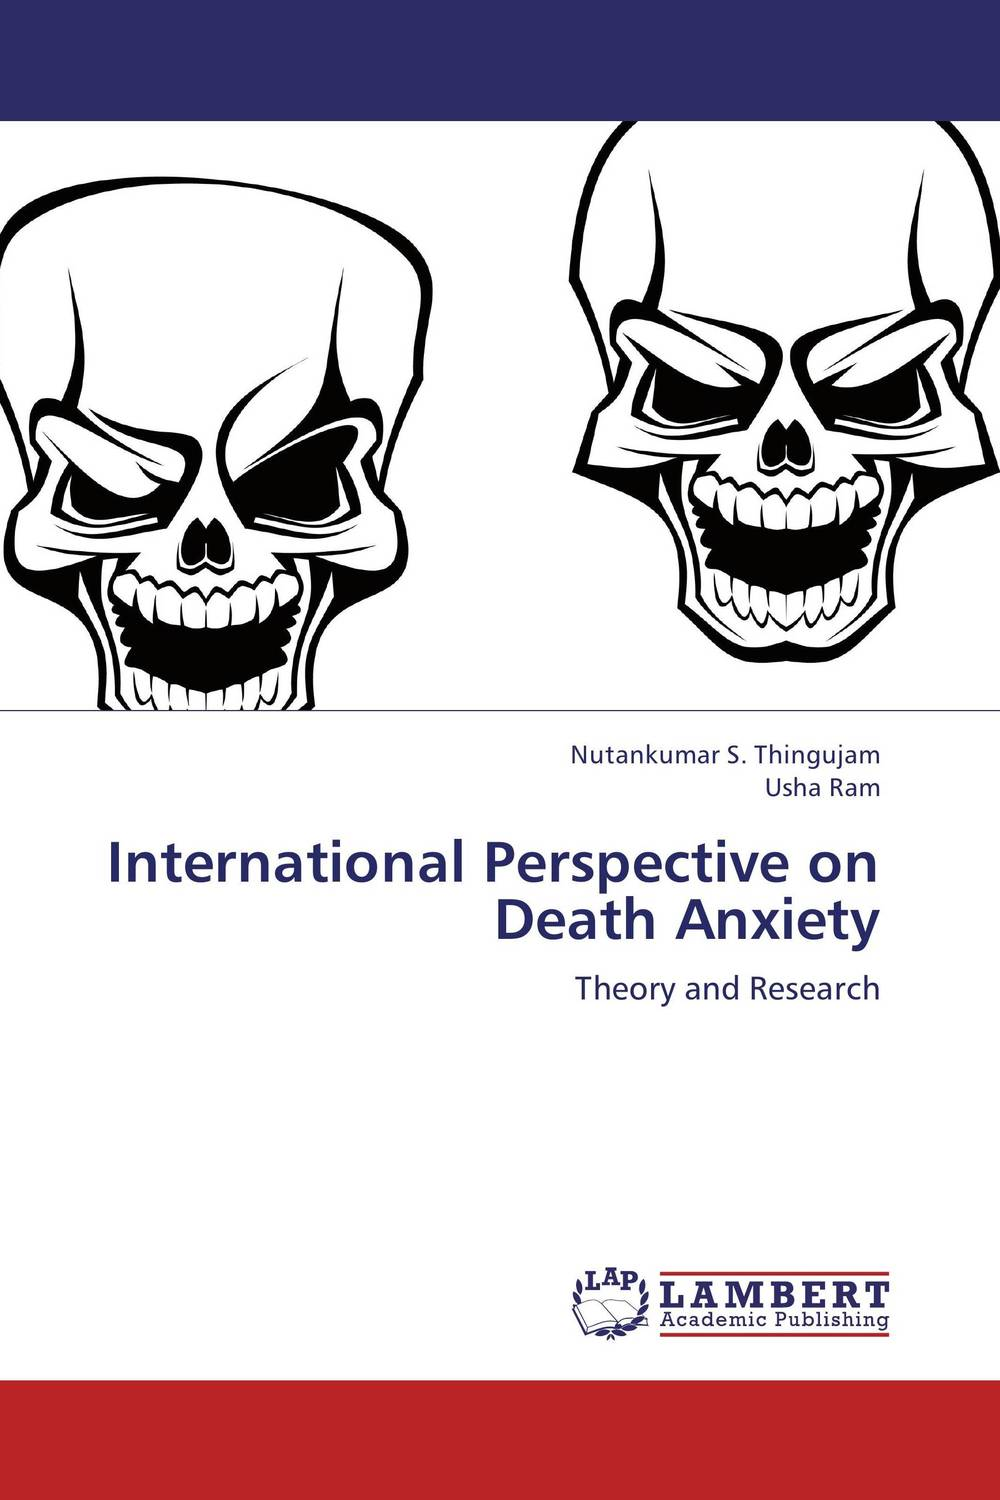 International Perspective on Death Anxiety neuropsychological functions in depression with anxiety disorders